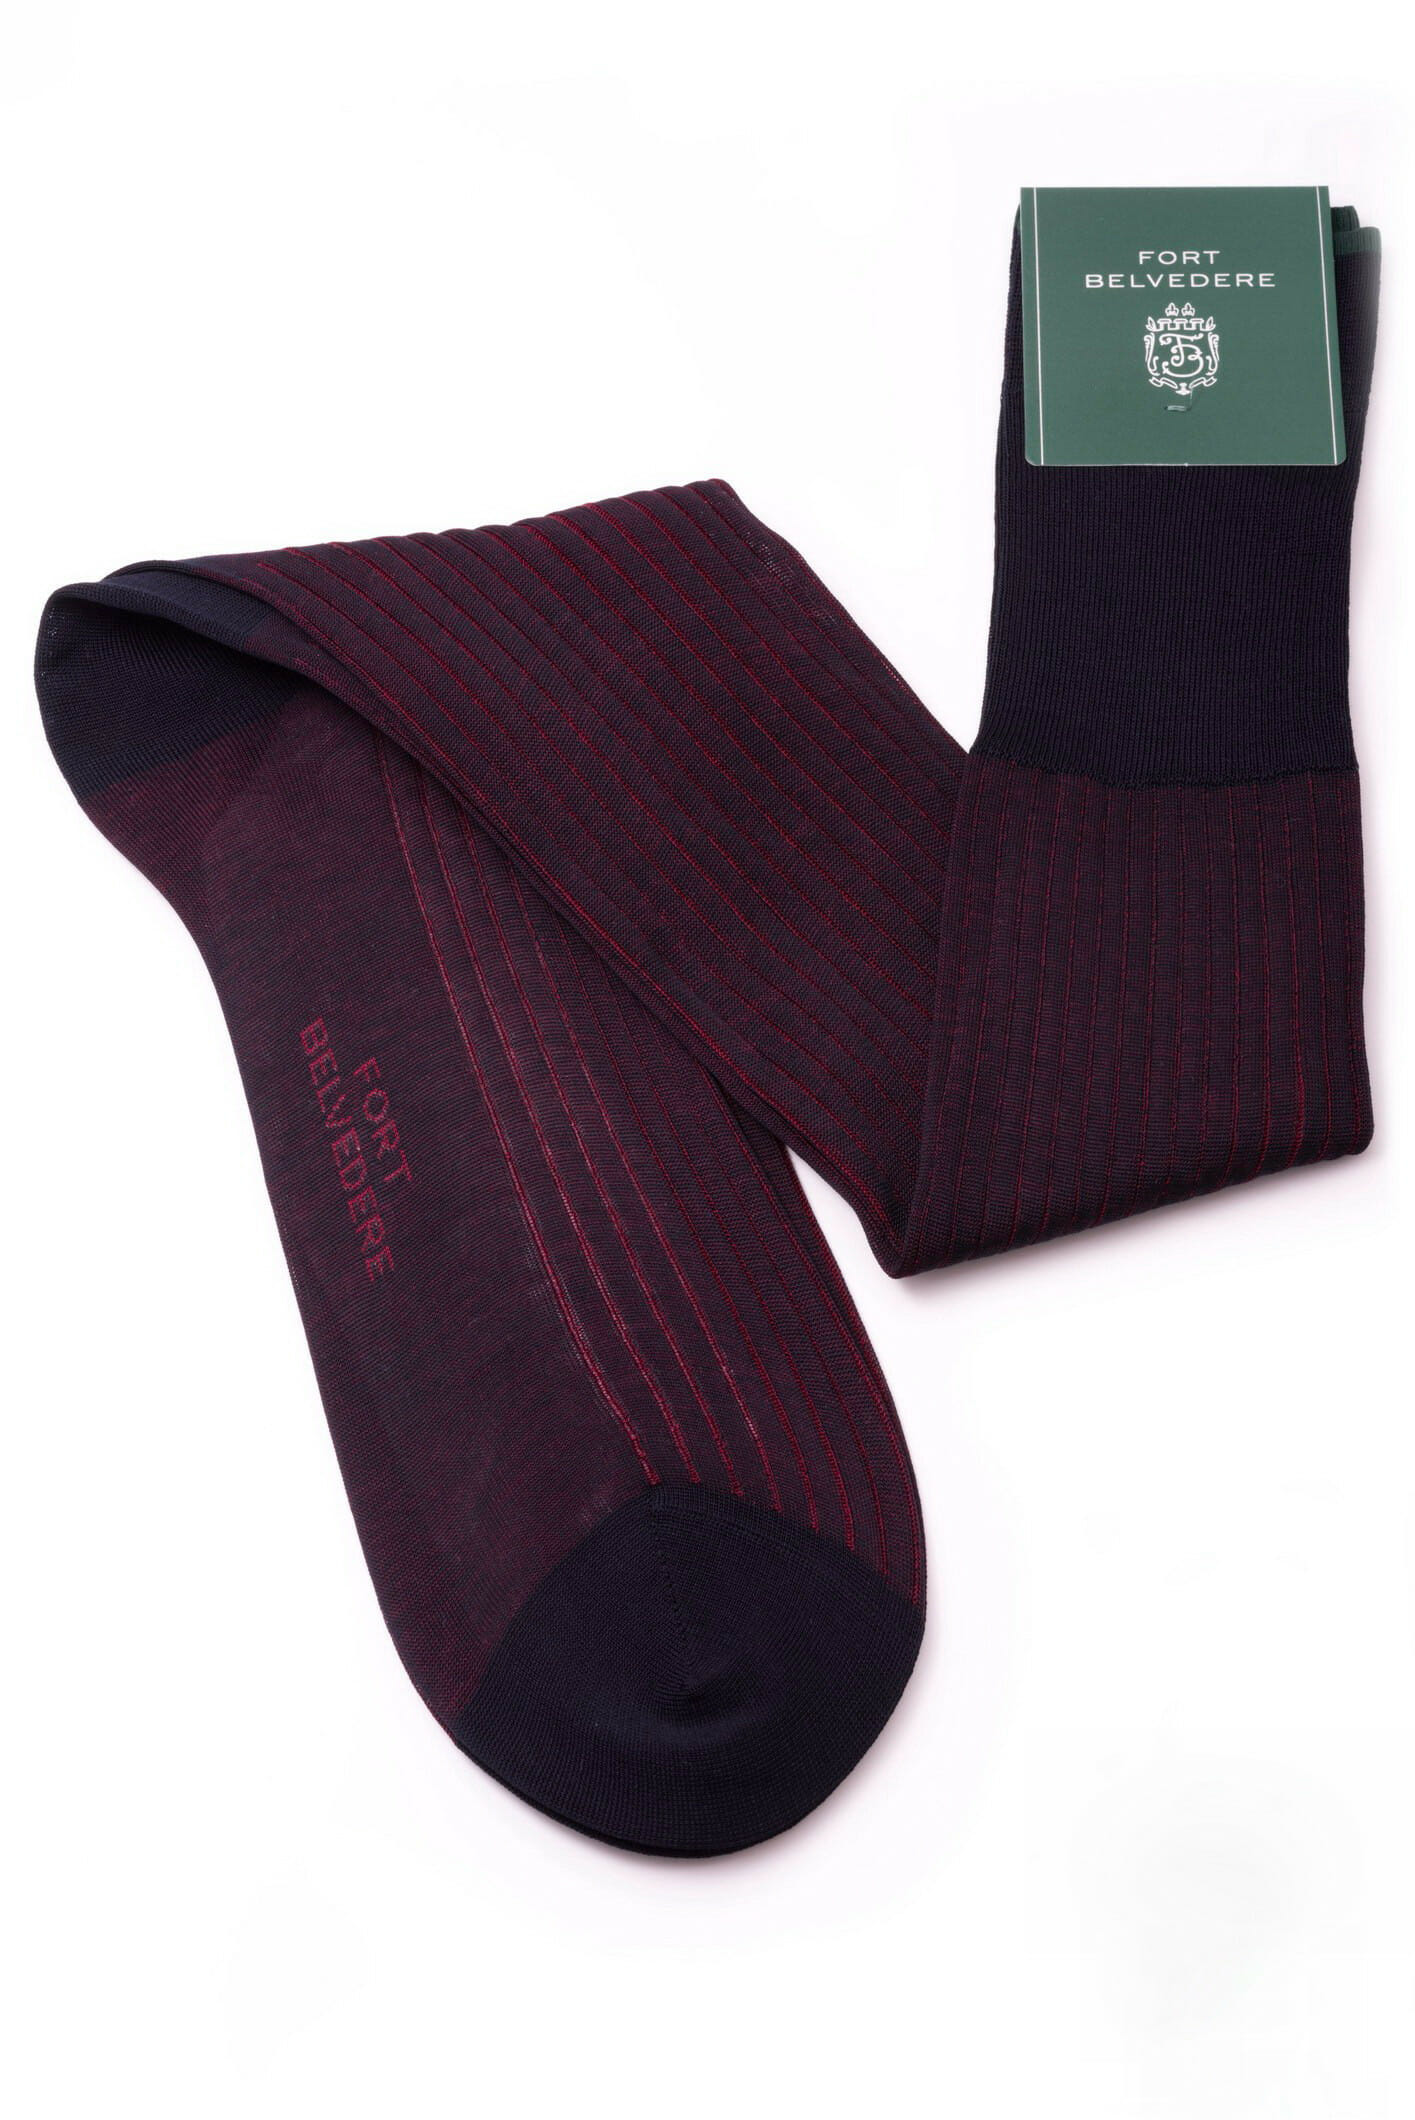 Midnight Blue and Burgundy Shadow Stripe Ribbed Socks Fil d'Ecosse Cotton - Fort Belvedere